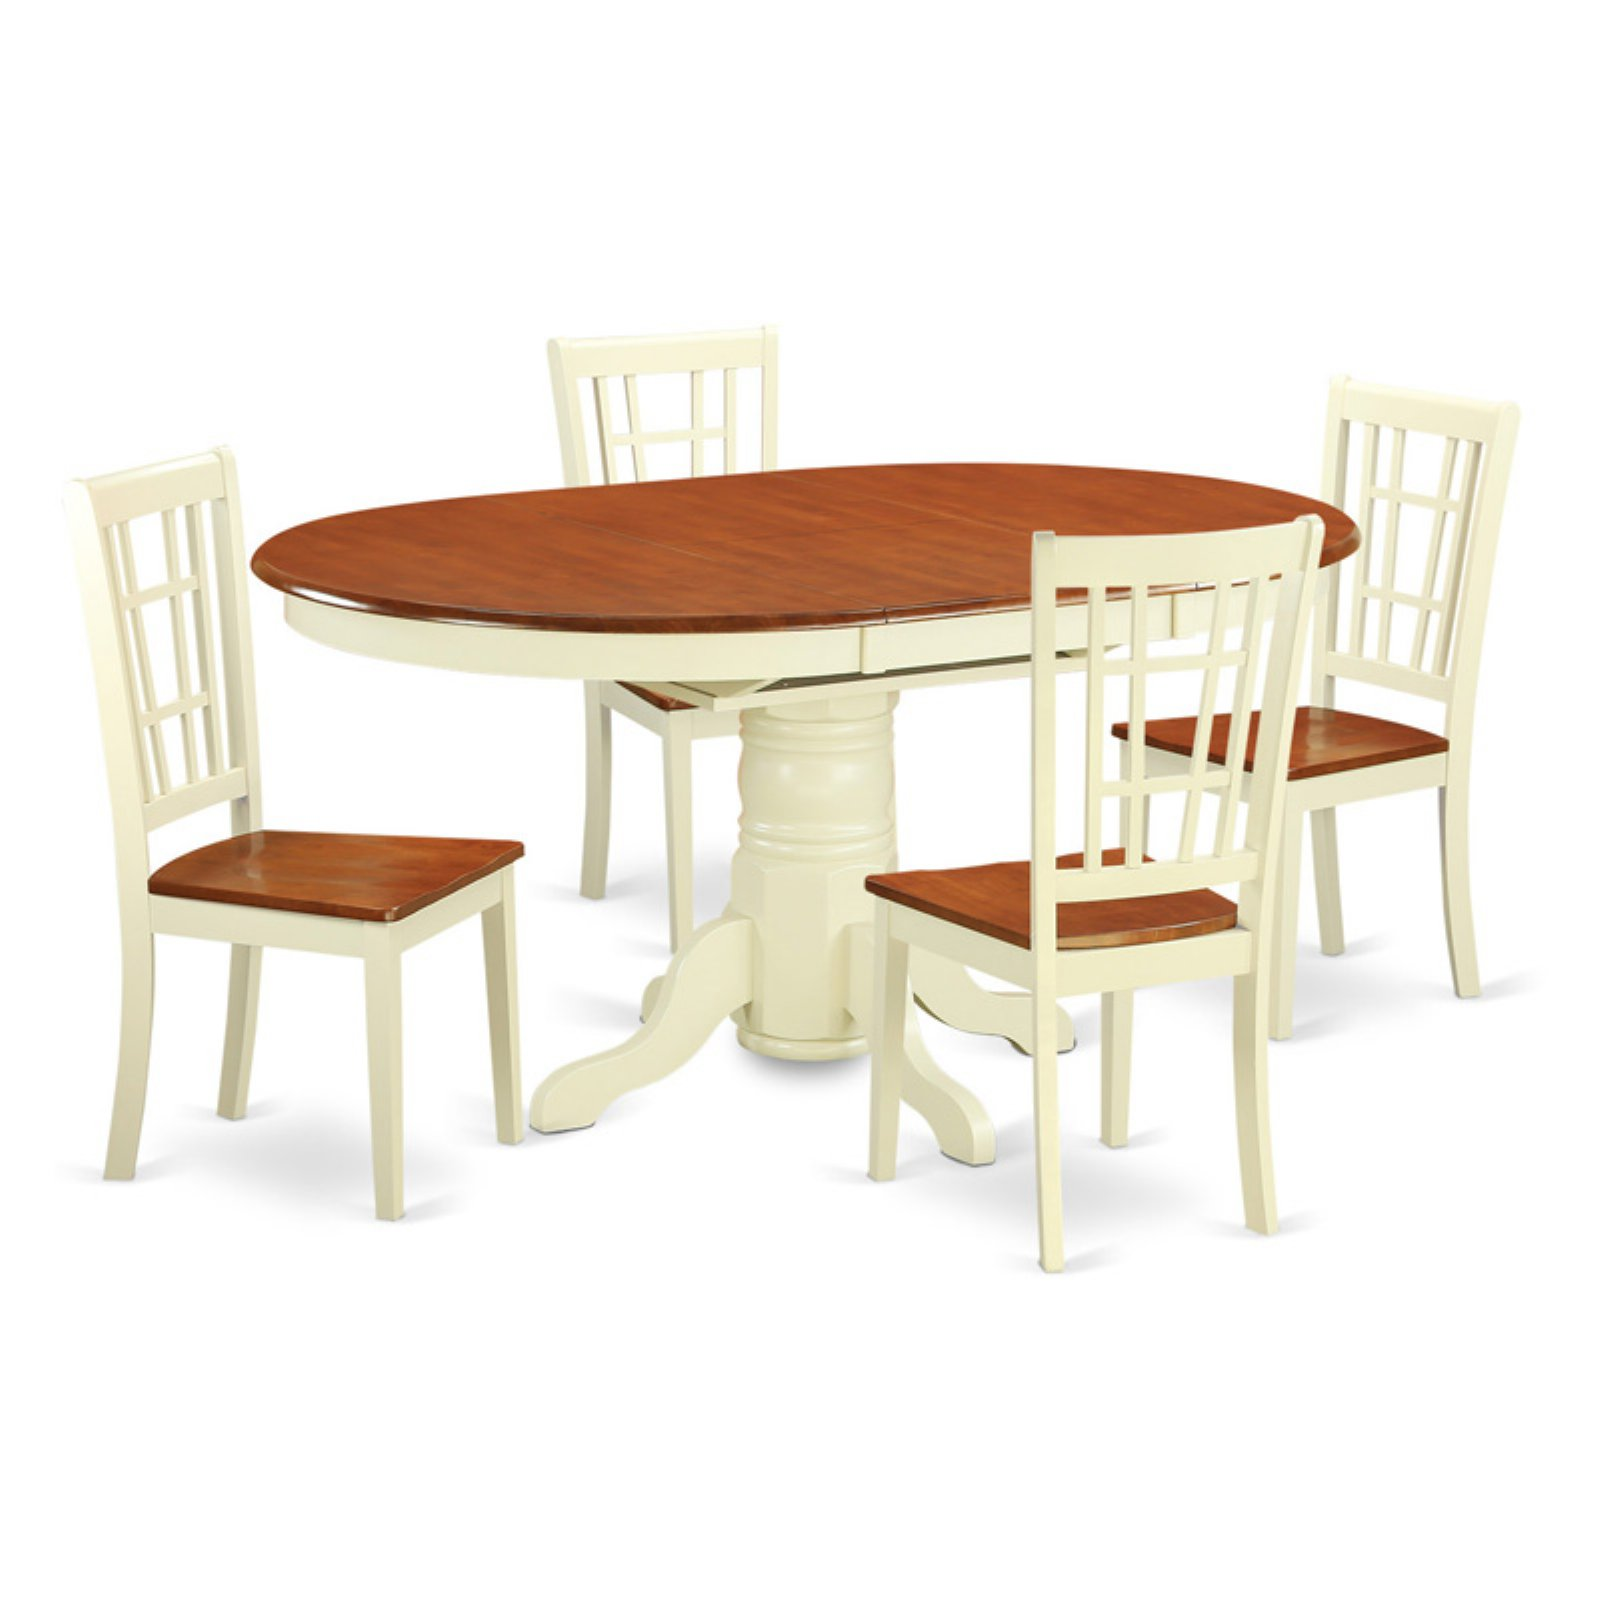 East West Furniture Avon 5 Piece Oval Pedestal Dining Table Set with Nicoli Chairs